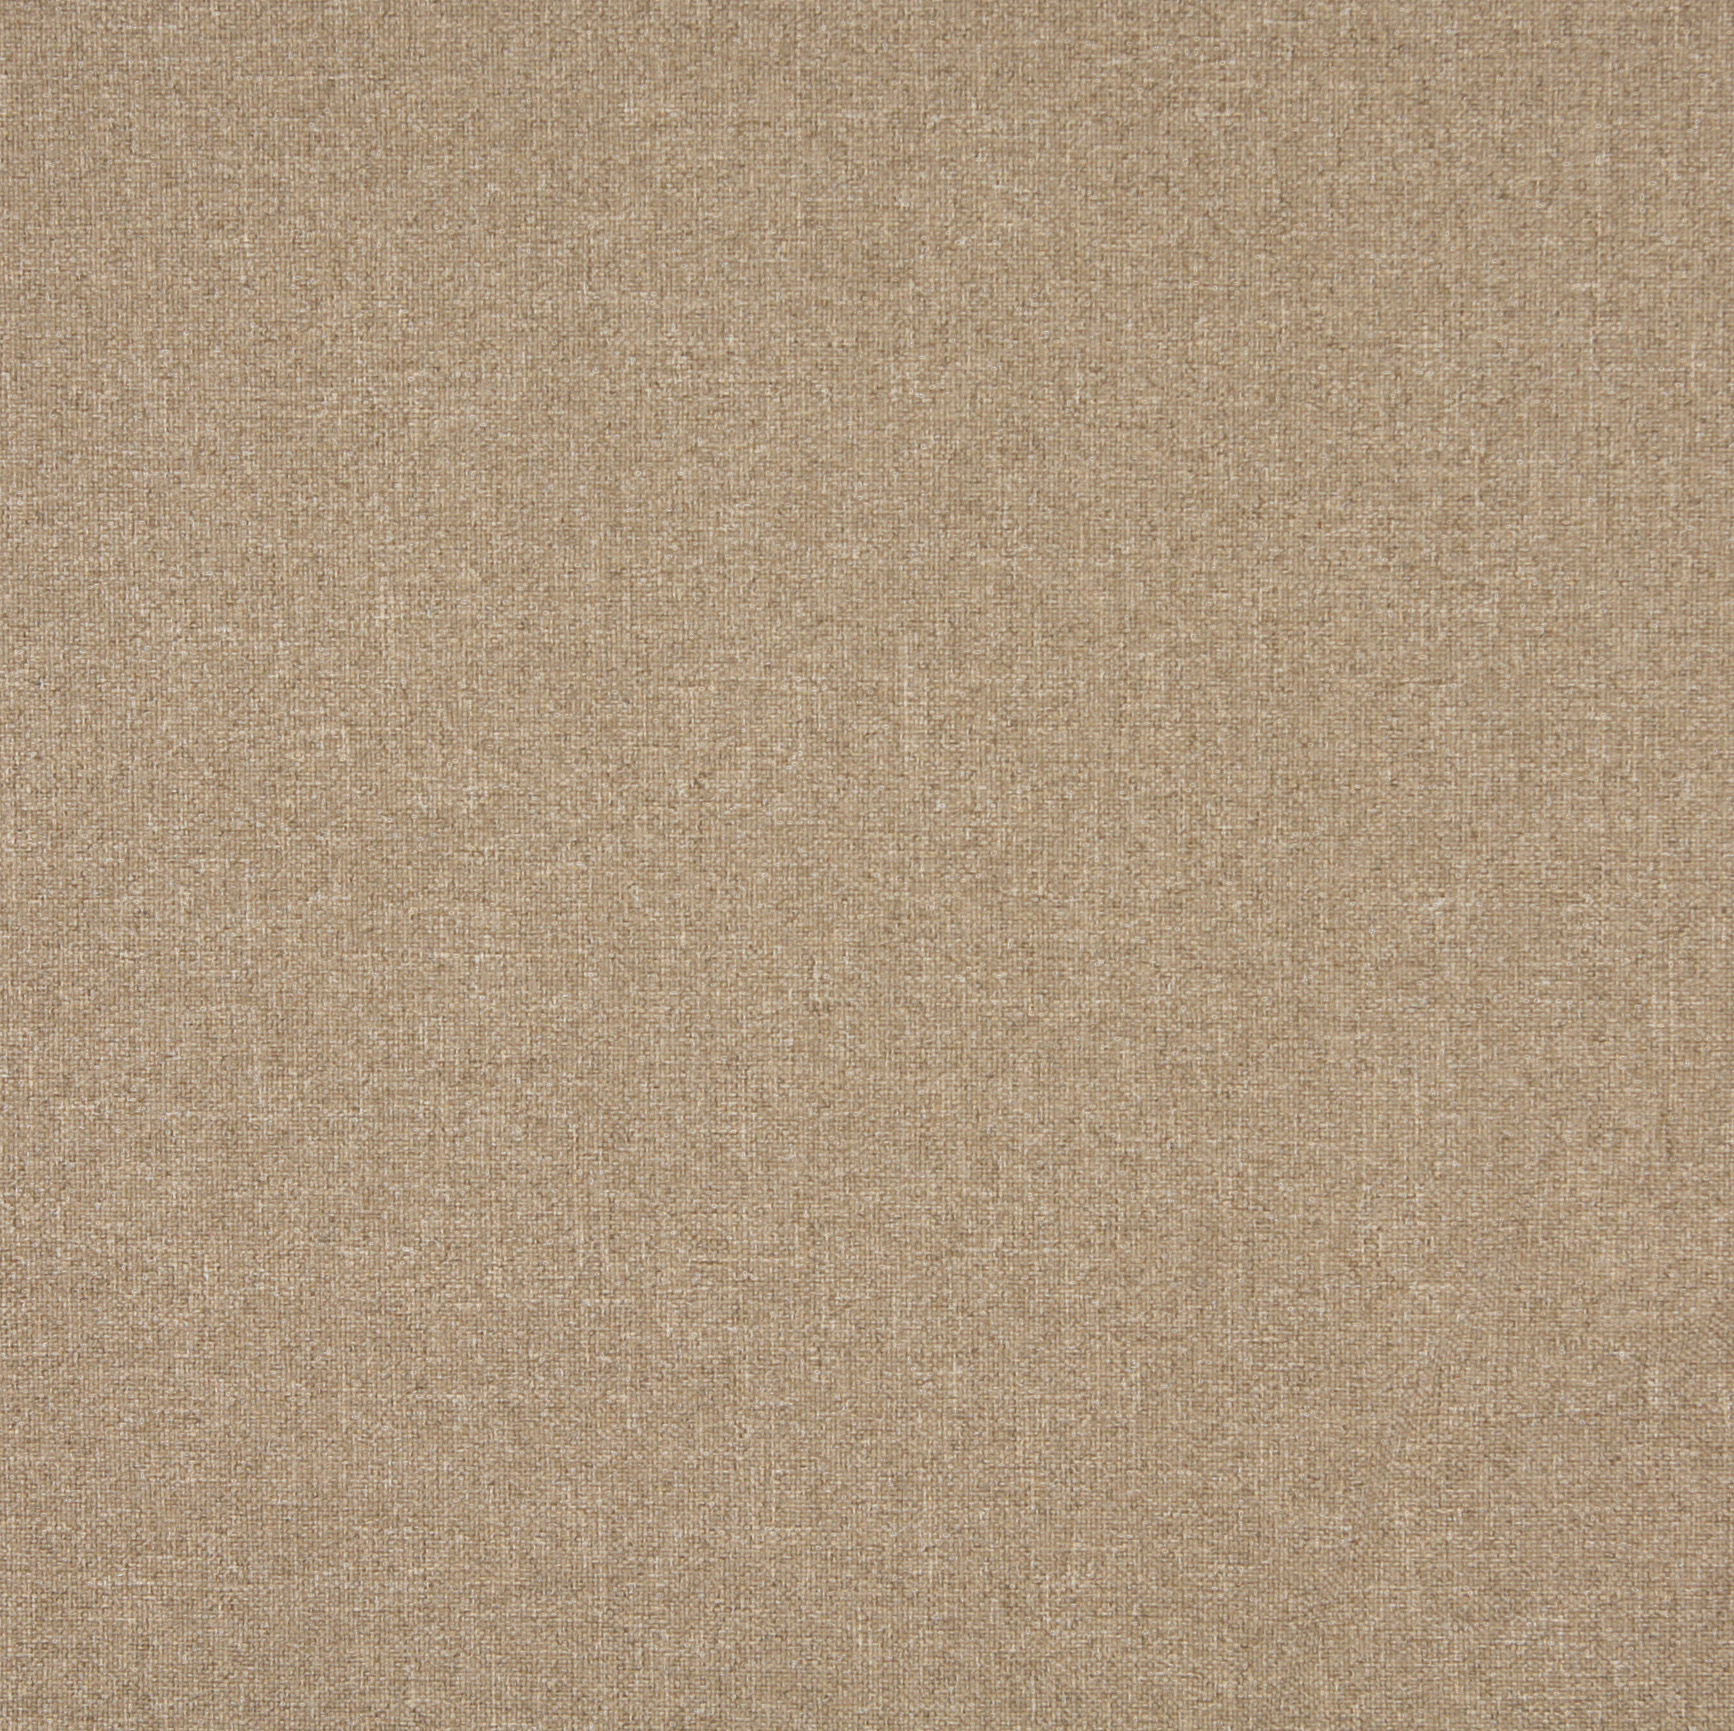 Beige Sand Plain Tweed Stain And Soil Repellent Upholstery Fabric